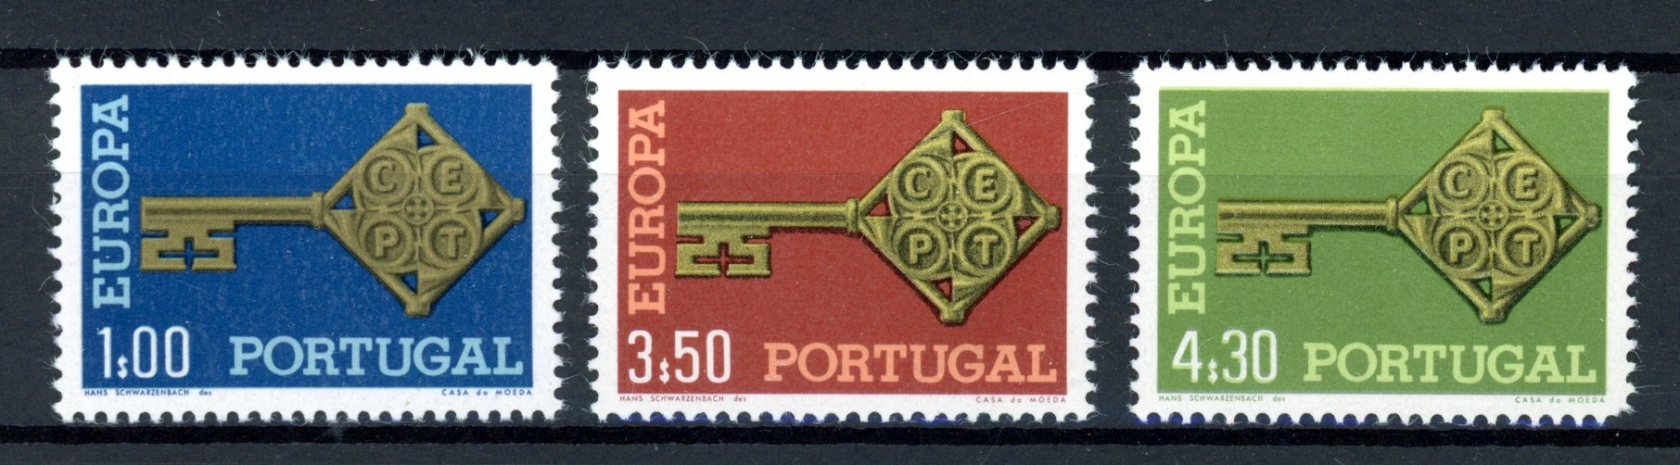 Portugal-MiNr-1051-53-tamponne-Neuf-sans-charniere-CEPT-c070